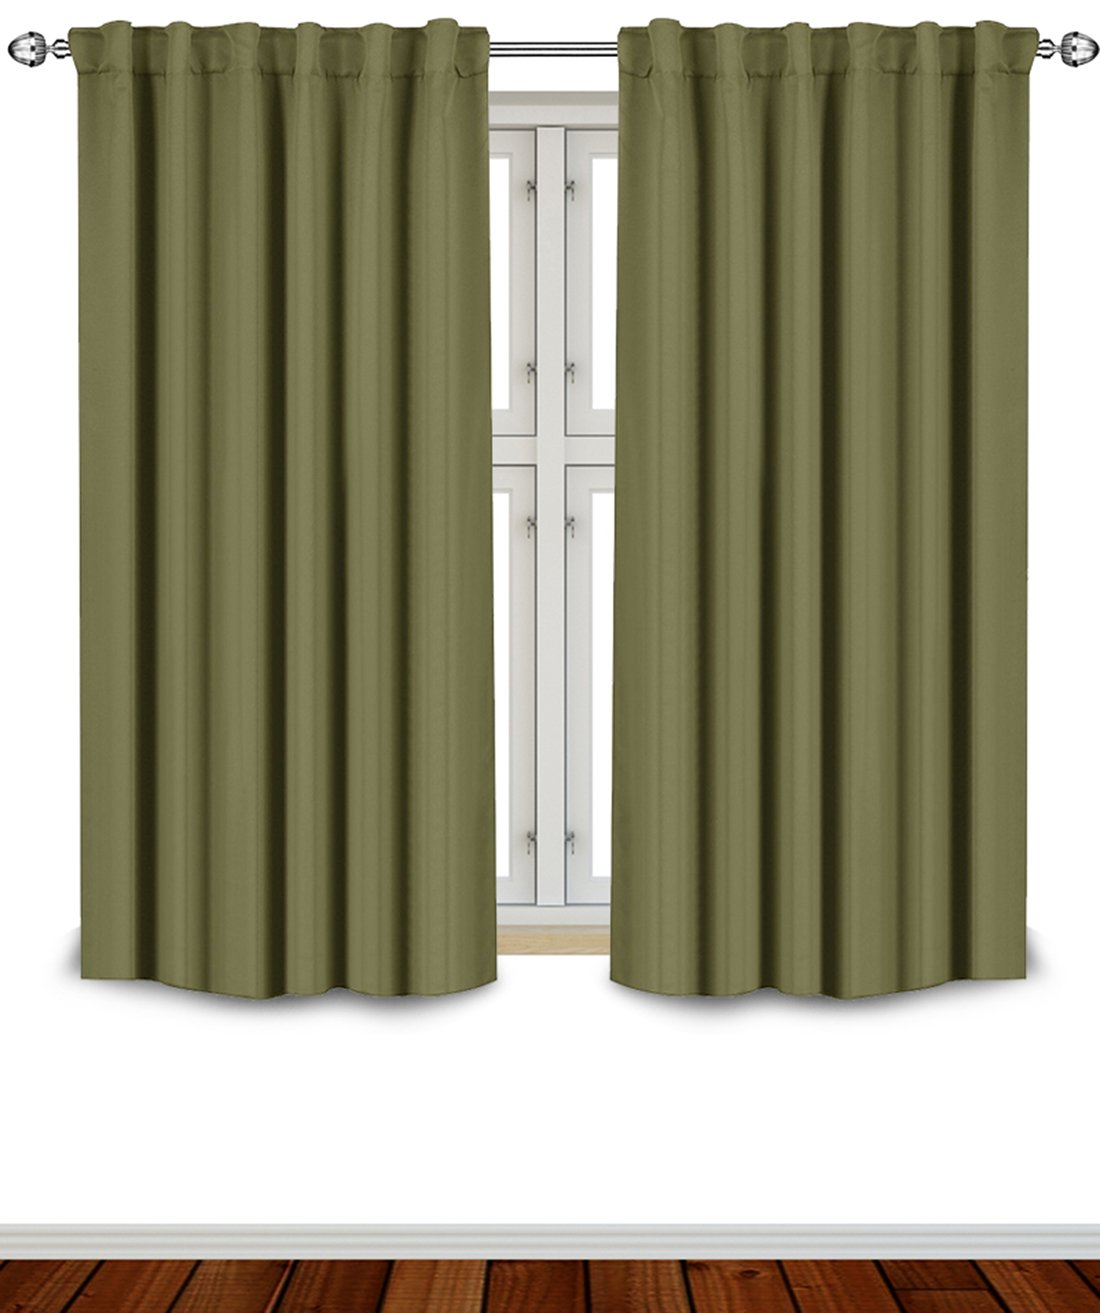 Amazon com utopia bedding blackout room darkening and thermal insulating window curtains panels drapes 2 panels set 7 back loops per panel 2 tie